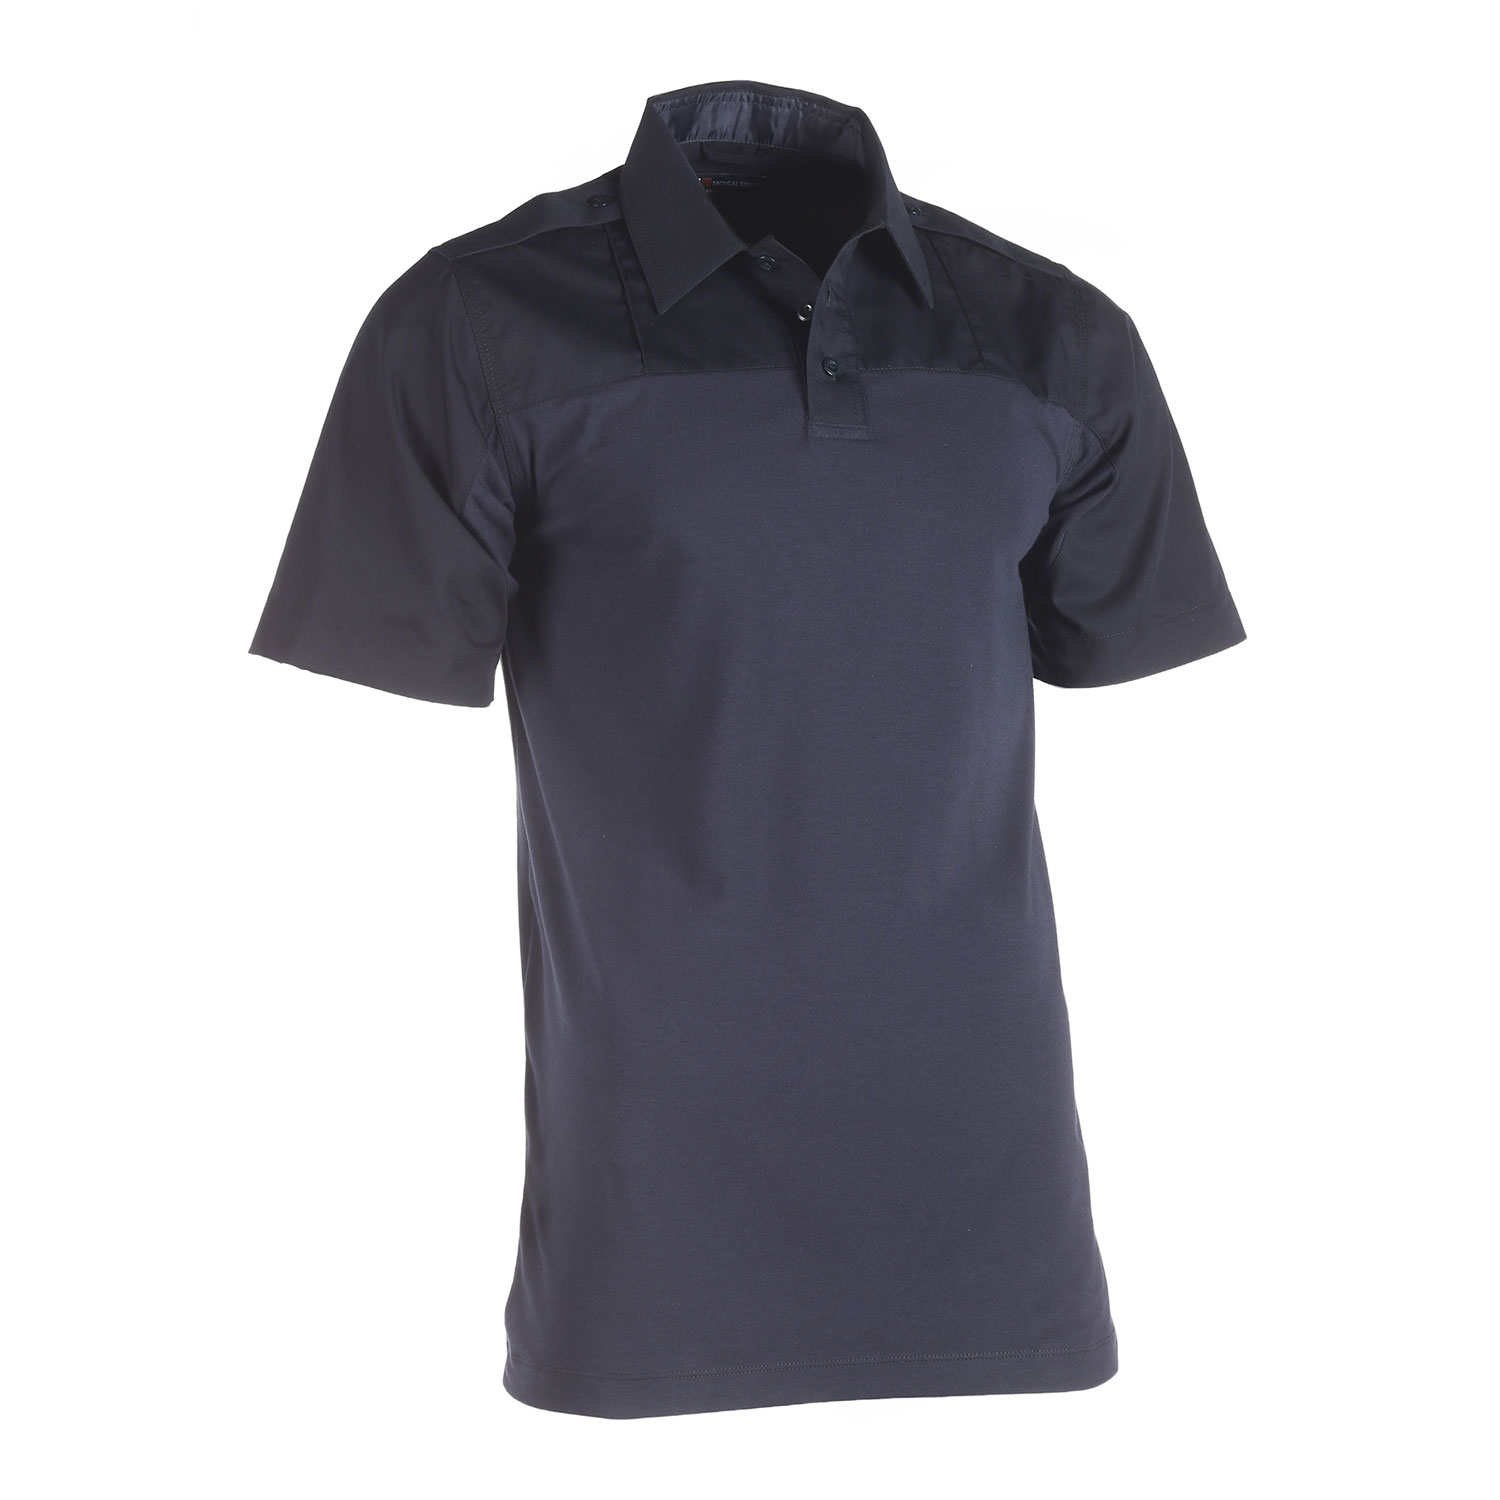 5.11 Tactical Short Sleeve Taclite PDU Rapid Shirt